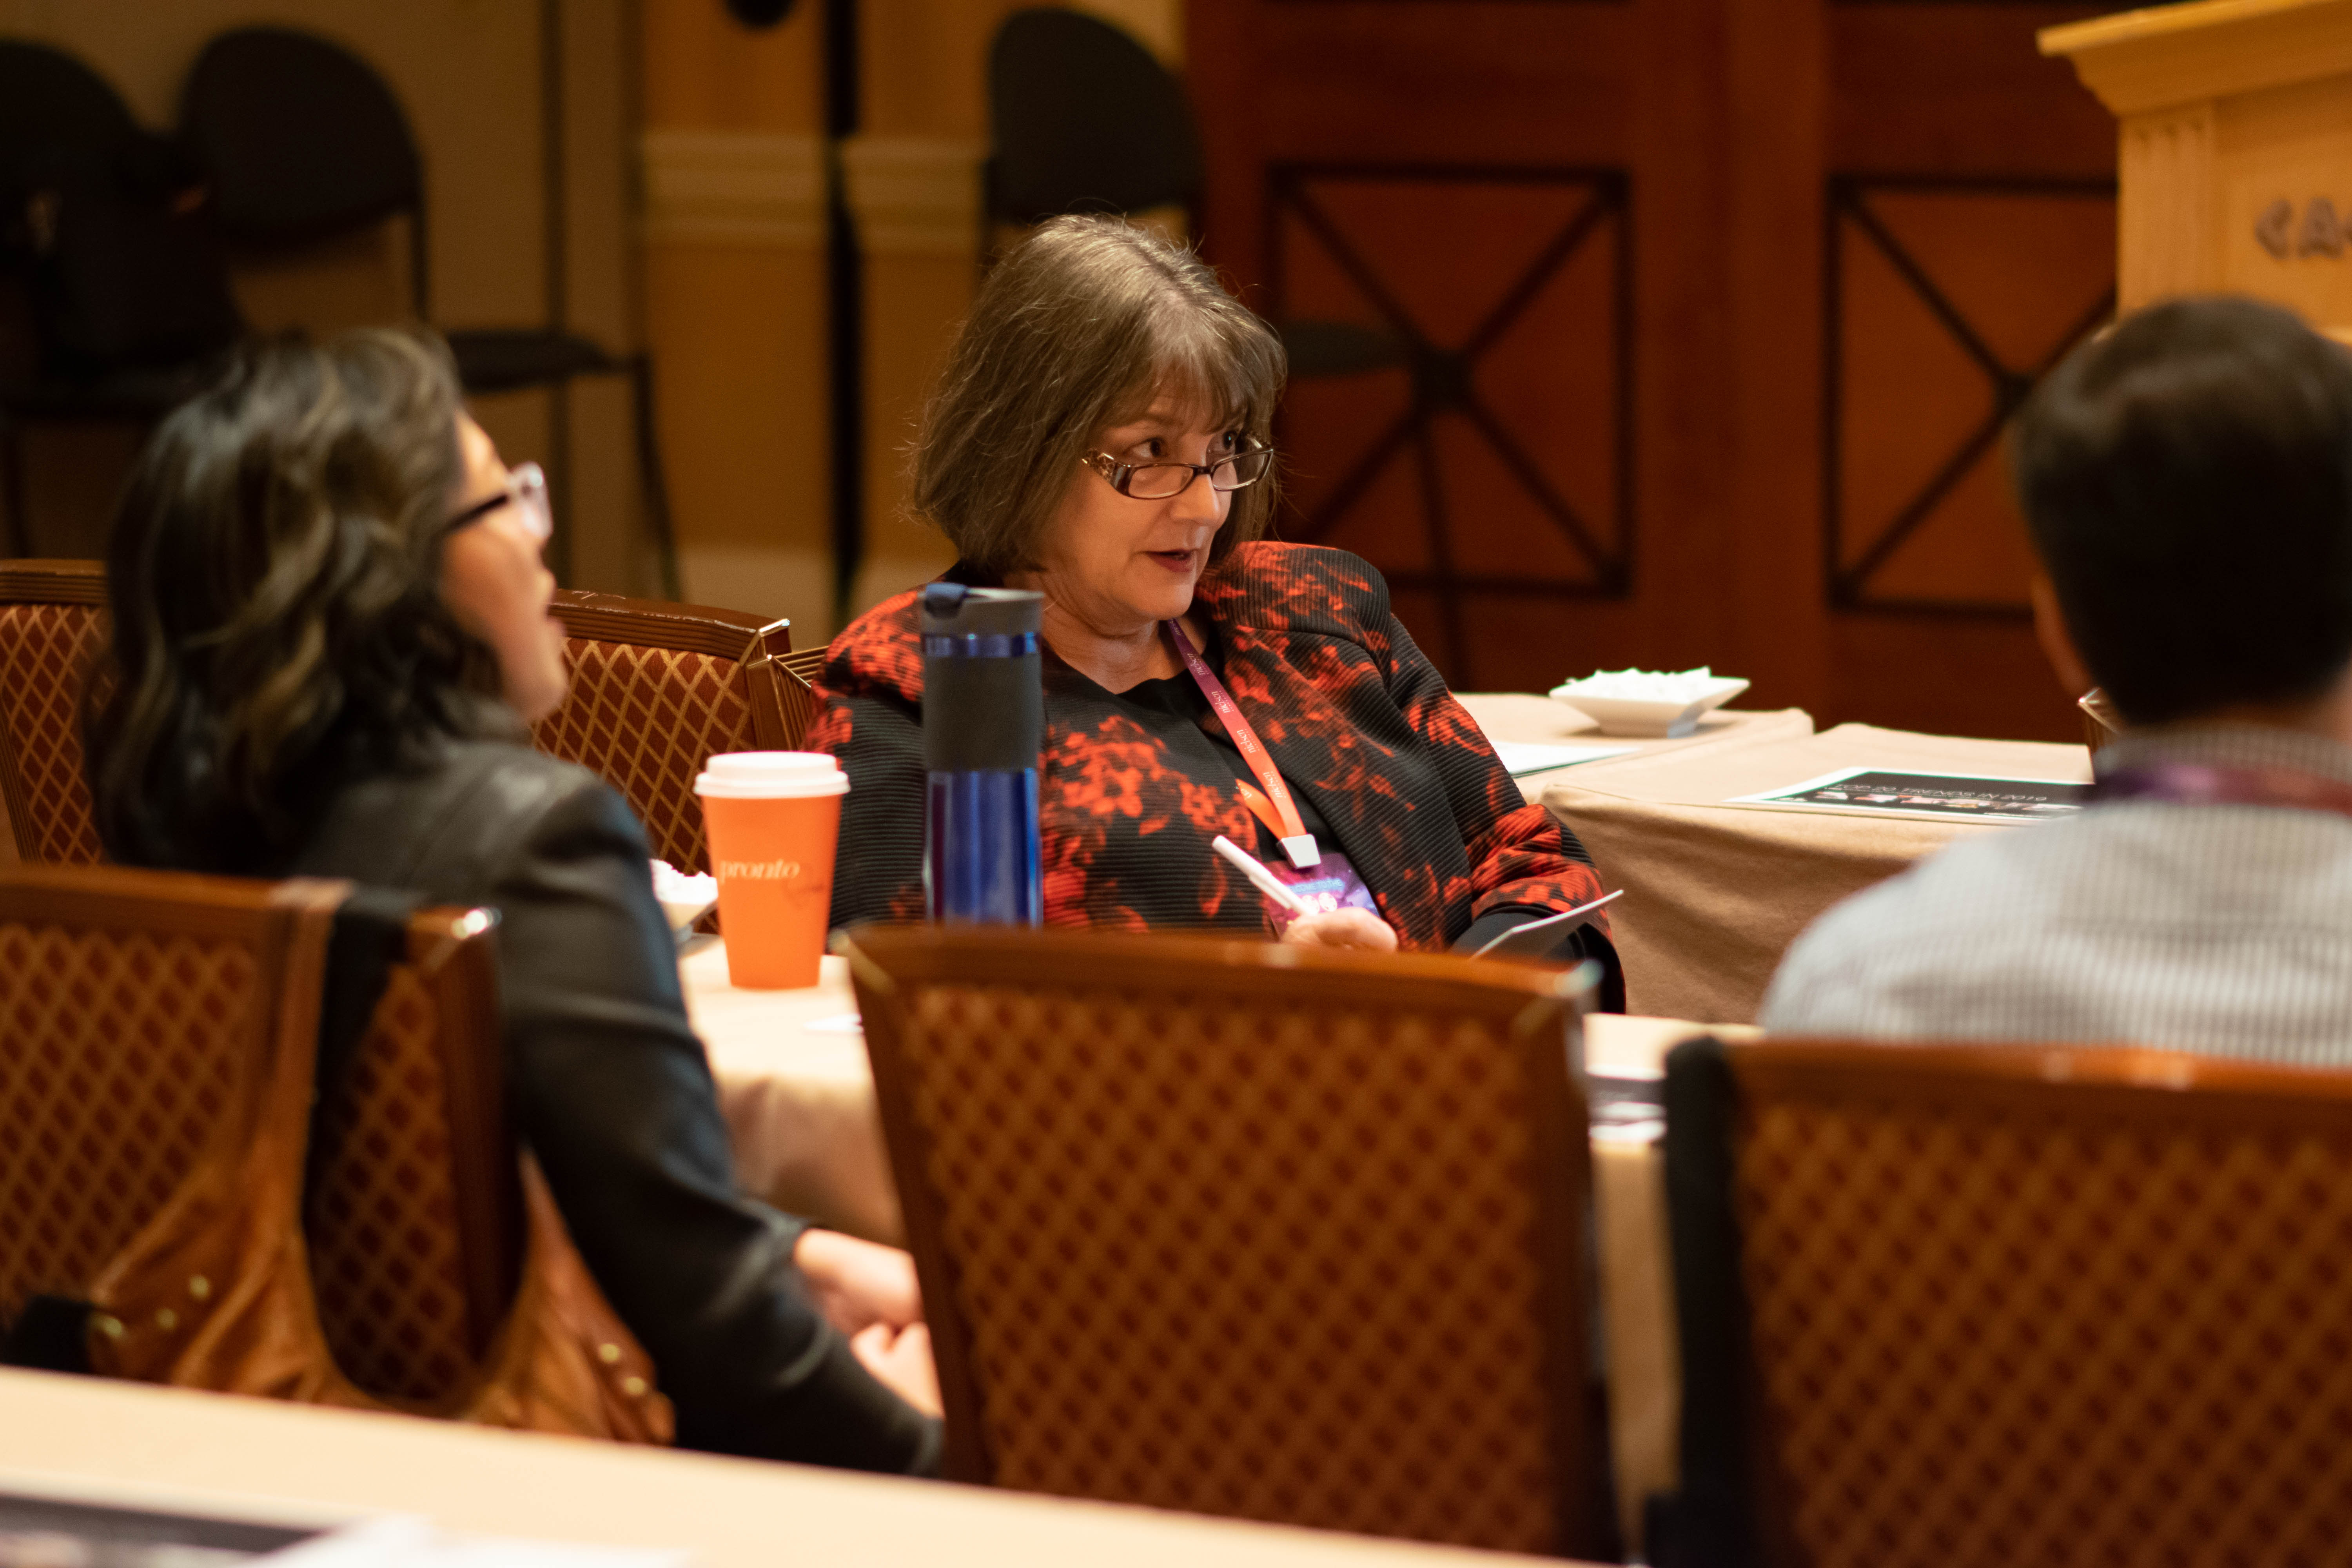 2019 Conference Photo Gallery - Category Management Association